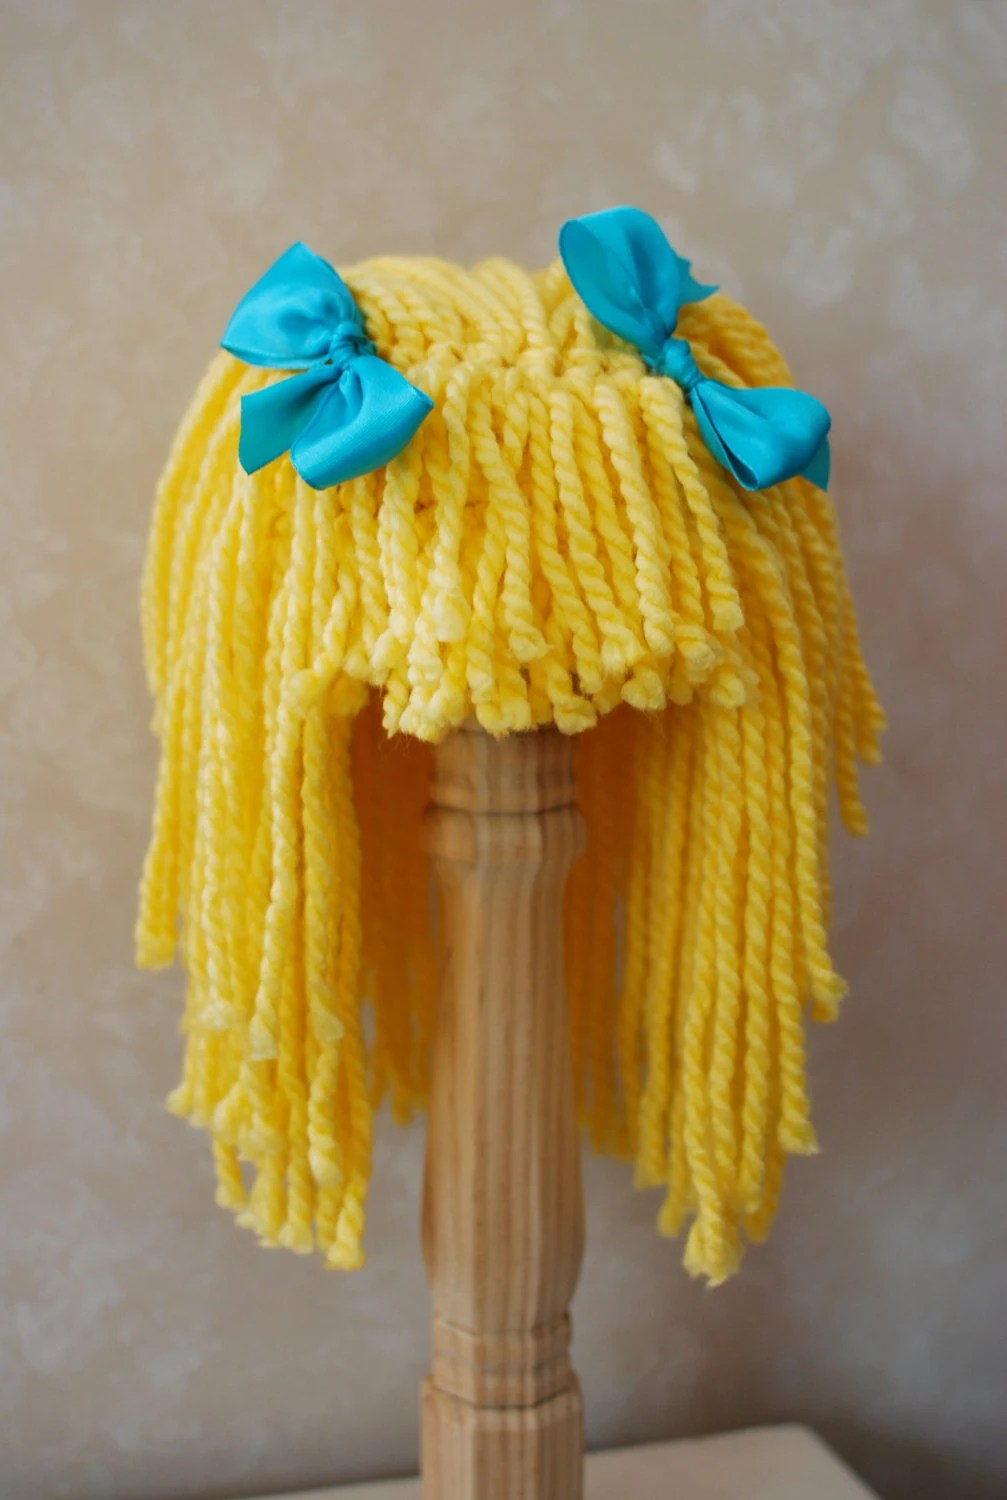 Yarn Hair Wig Toddler Size Yellow Blonde With Blue Ribbons